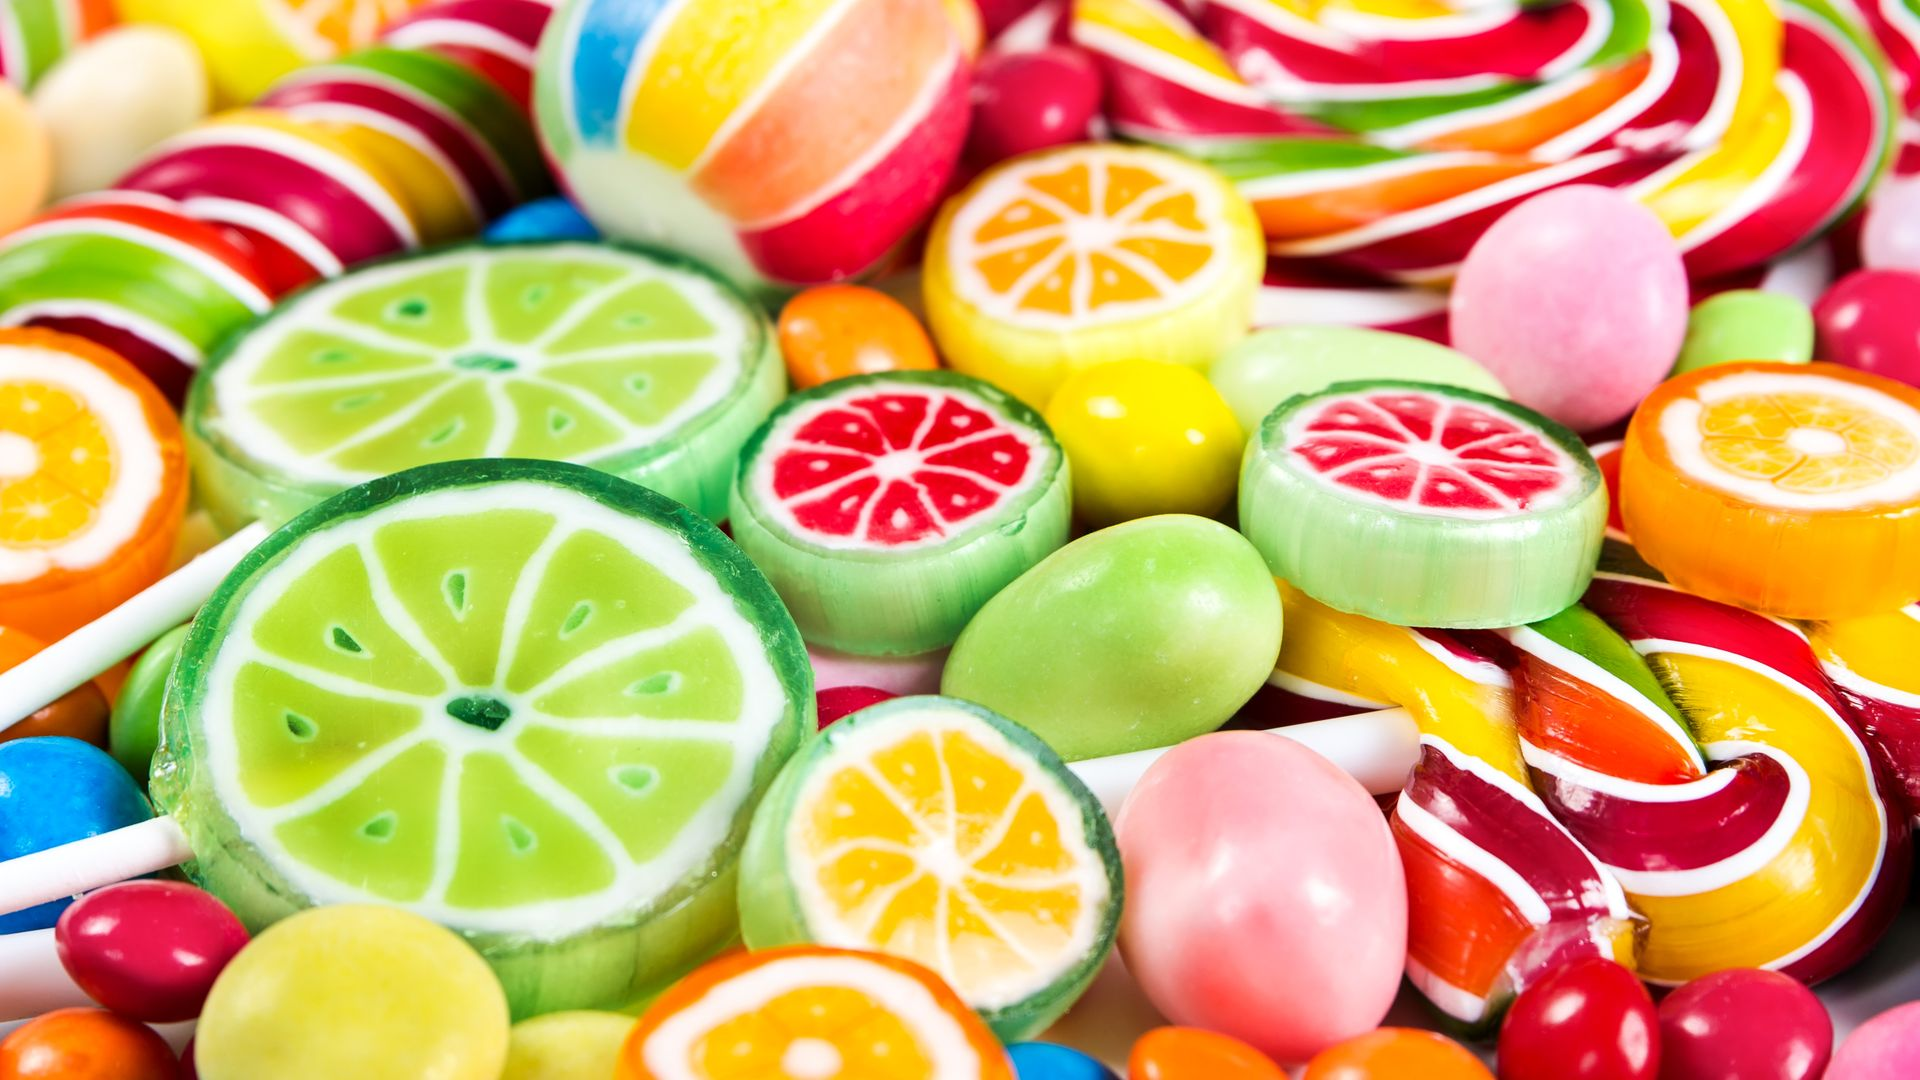 Multi Shape and Color Sweet Candies Wallpaper   Wallpaper Stream 1920x1080